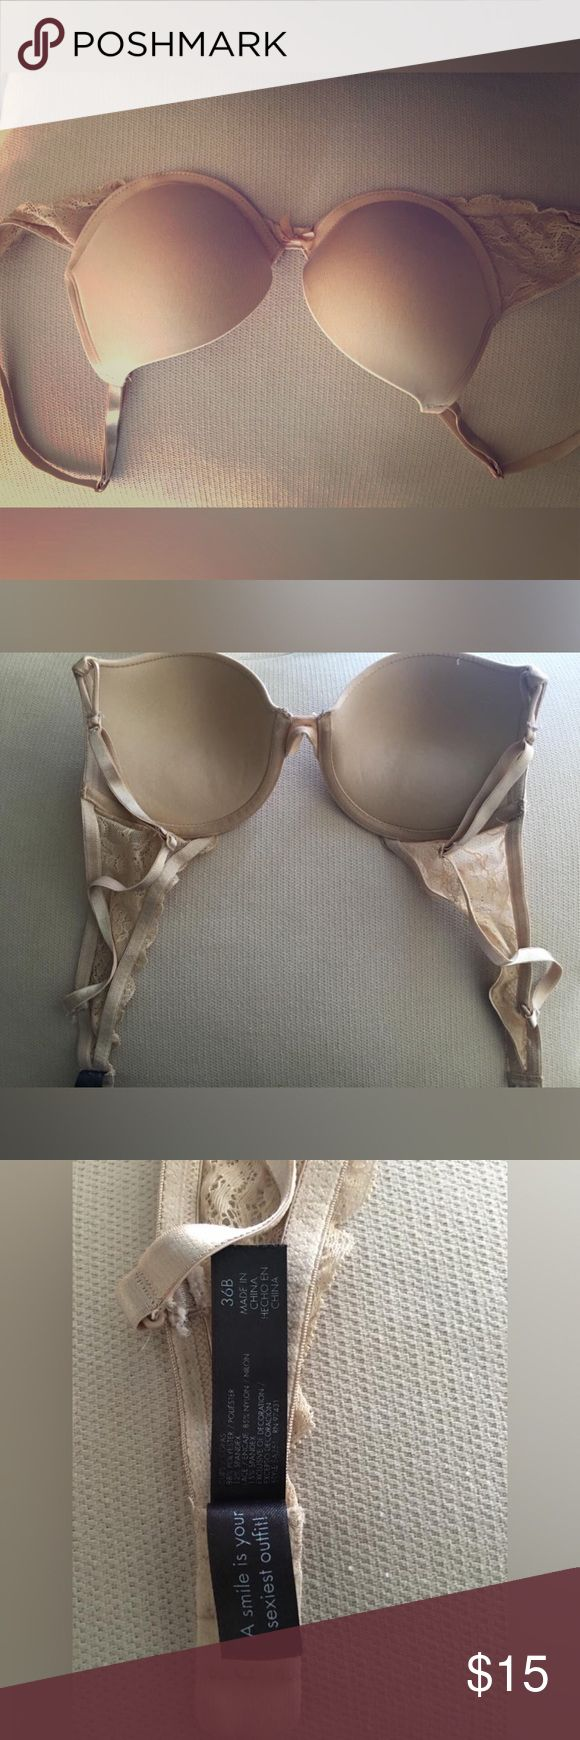 Champagne colored bra Purchased for EDC. unfortunately had to sell my tickets. Was for a mermaid costume, sequins, shells, dangling charms. The whole works. ☹️ smoke and pet free home. Intimates & Sleepwear Bras